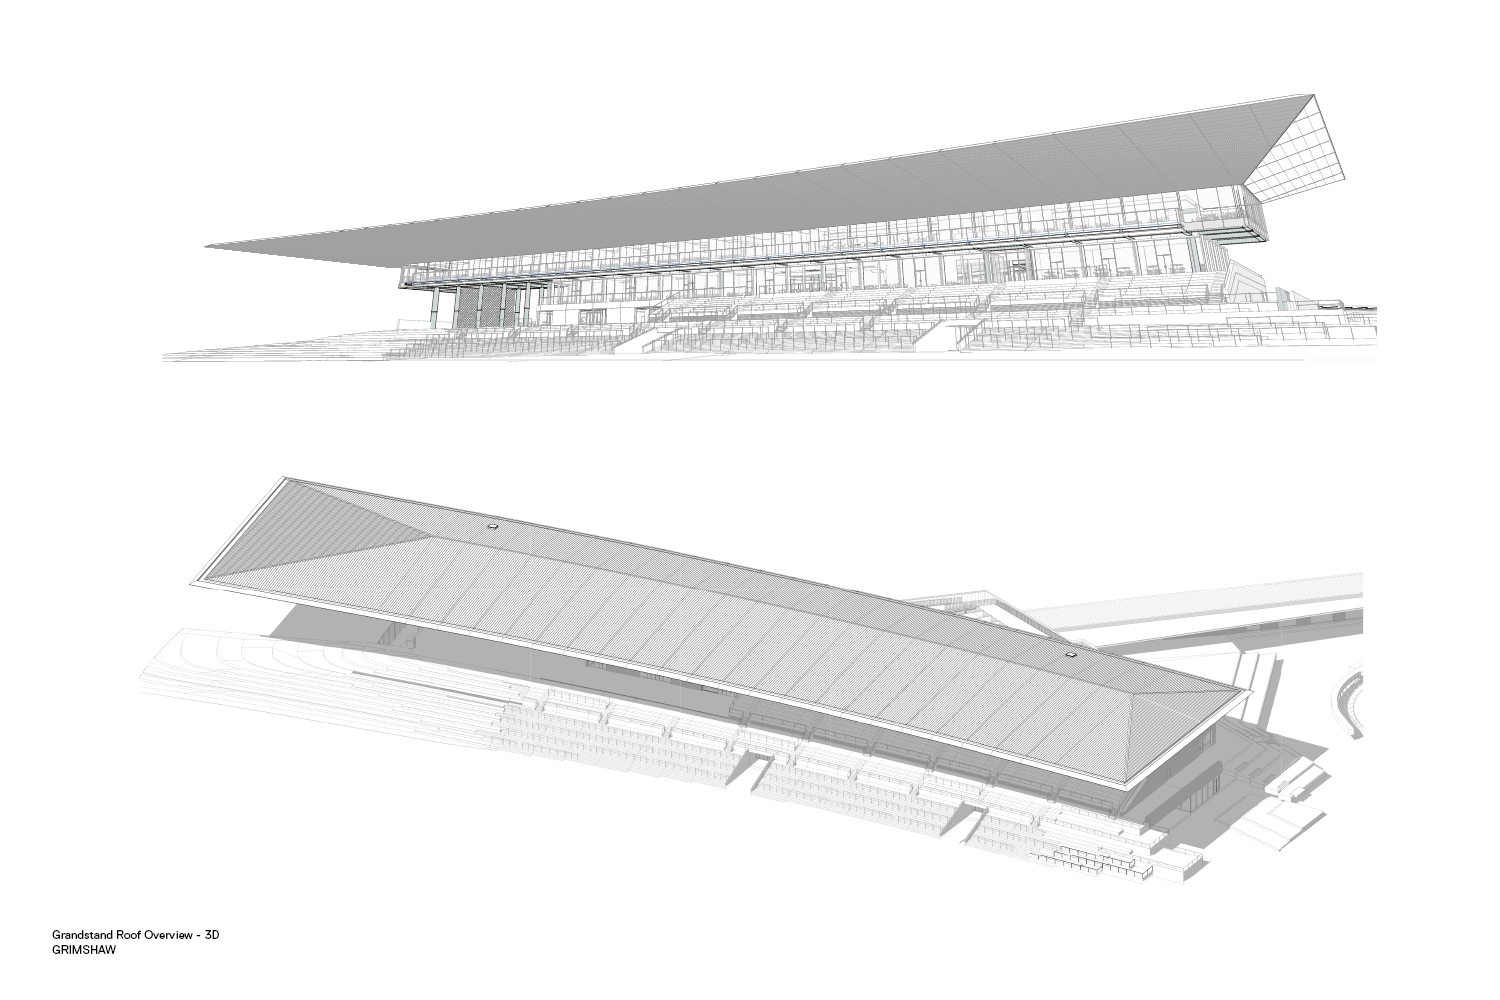 Curragh Roof Overview Grimshaw}